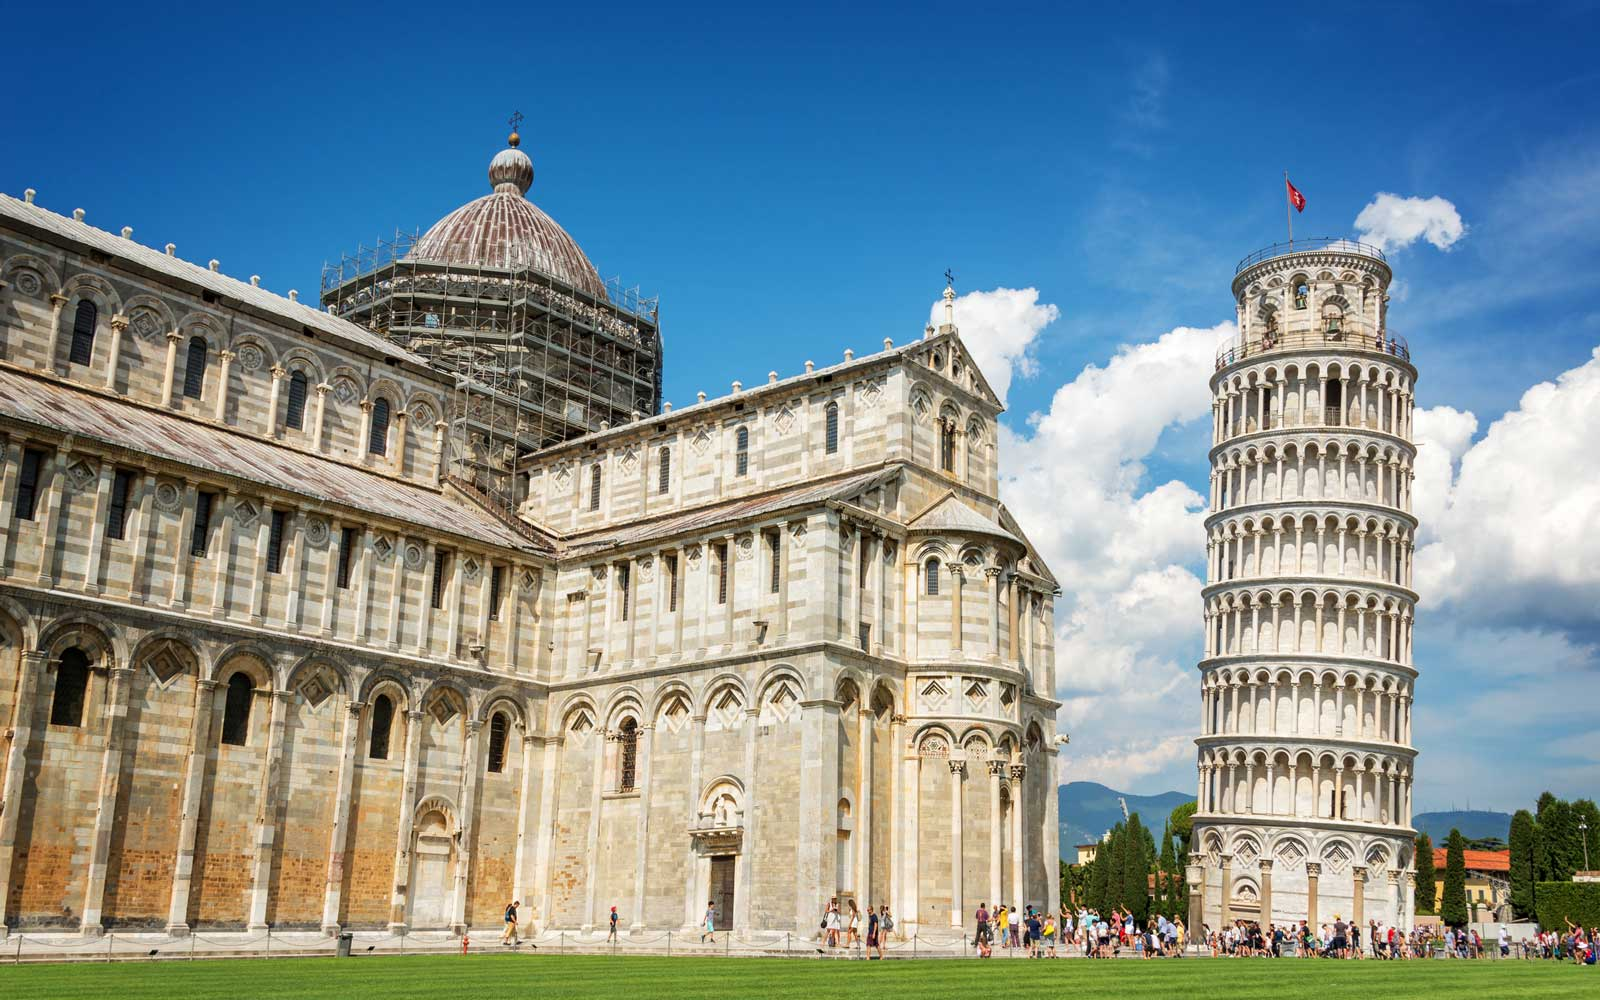 Leaning tower of Pisa and the cathedral (Duomo) in Pisa, Tuscany, Italy